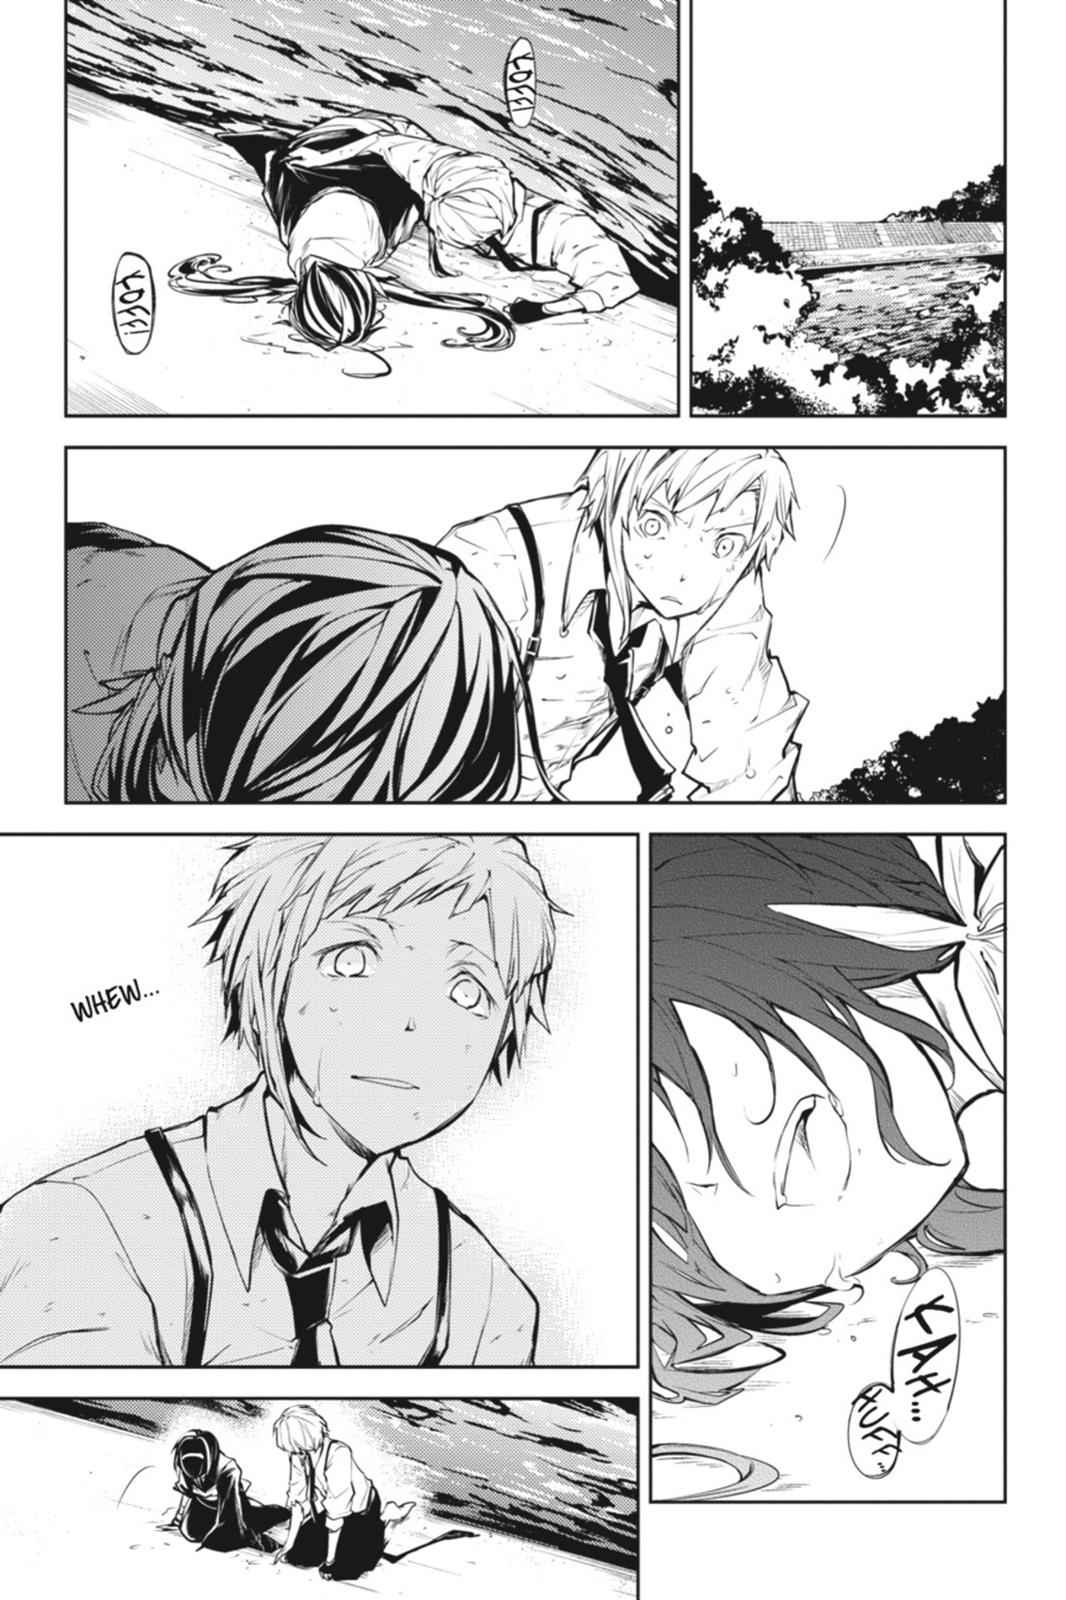 Bungou Stray Dogs Chapter 8 Page 50